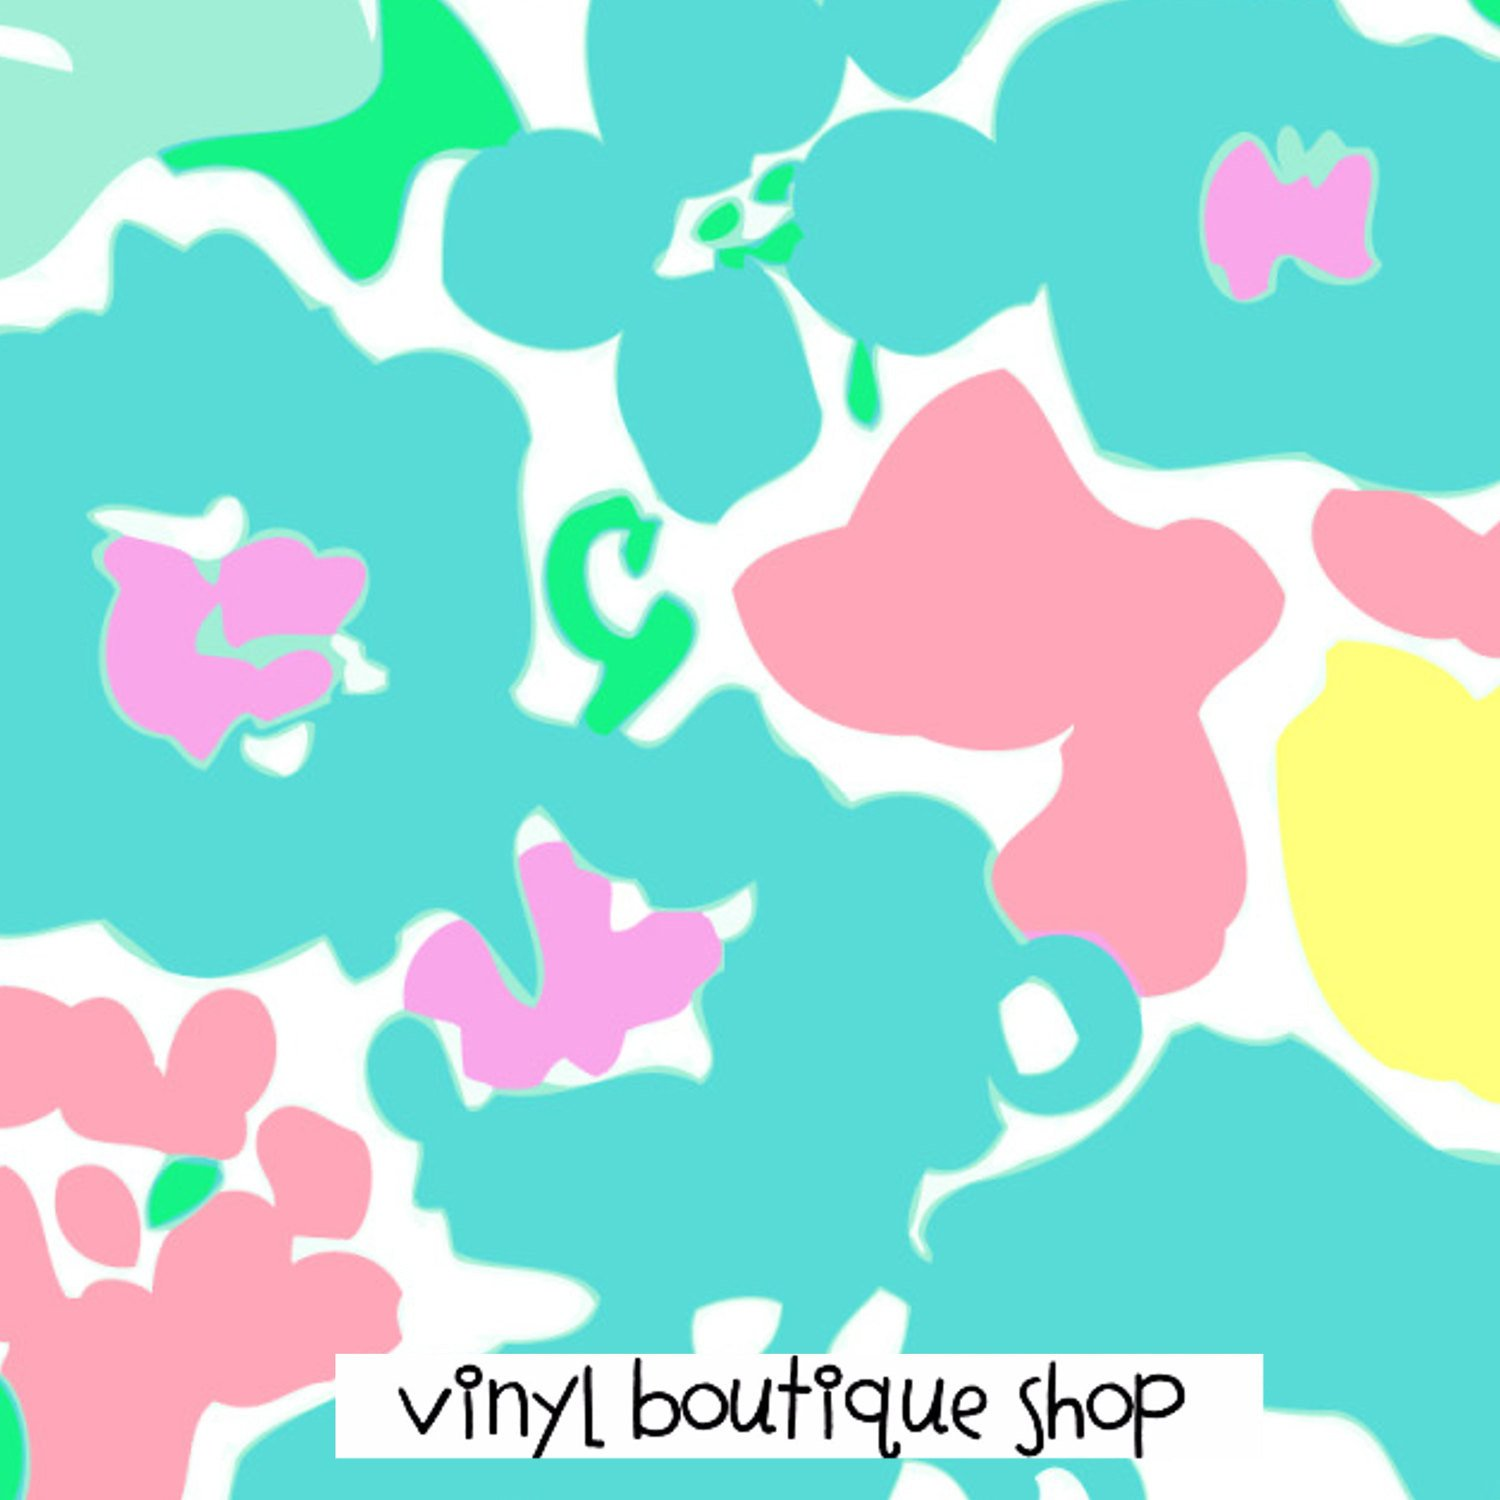 Resort White Spring Fling Lilly Inspired Printed Patterned Craft Vinyl